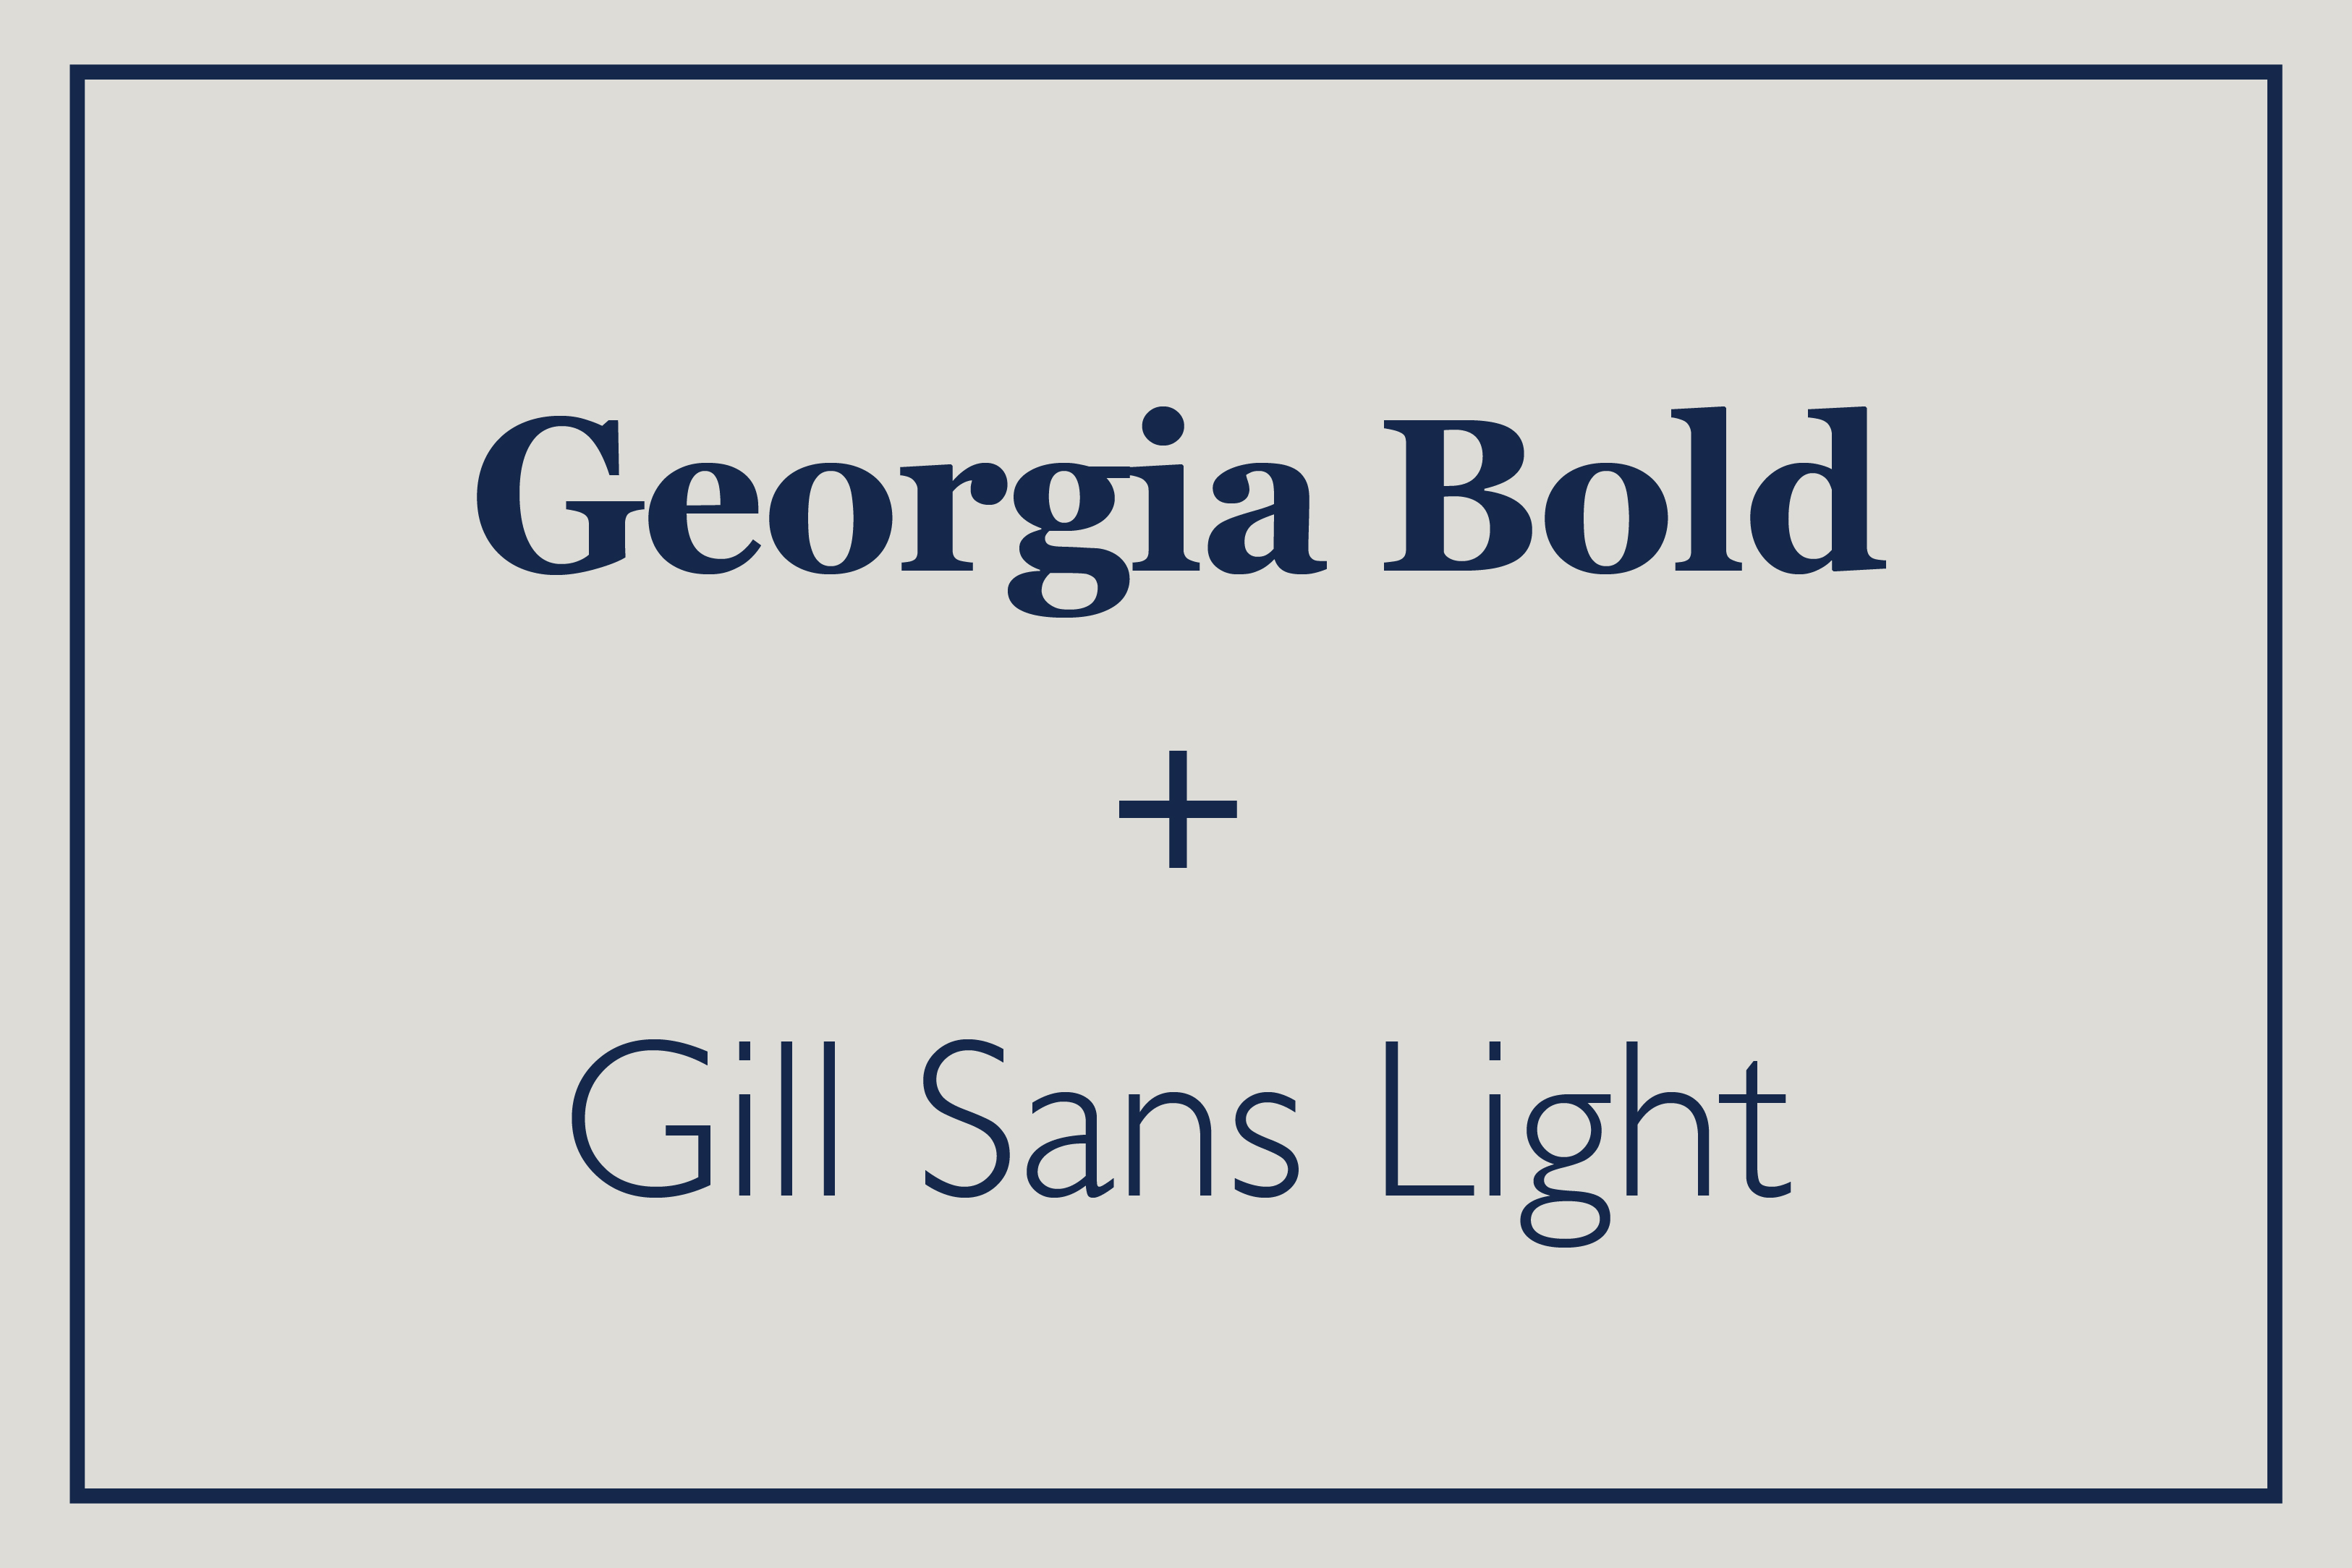 Georgia bold commands attention but is a bit traditional so balance that with the classic modern lines of Gill Sans